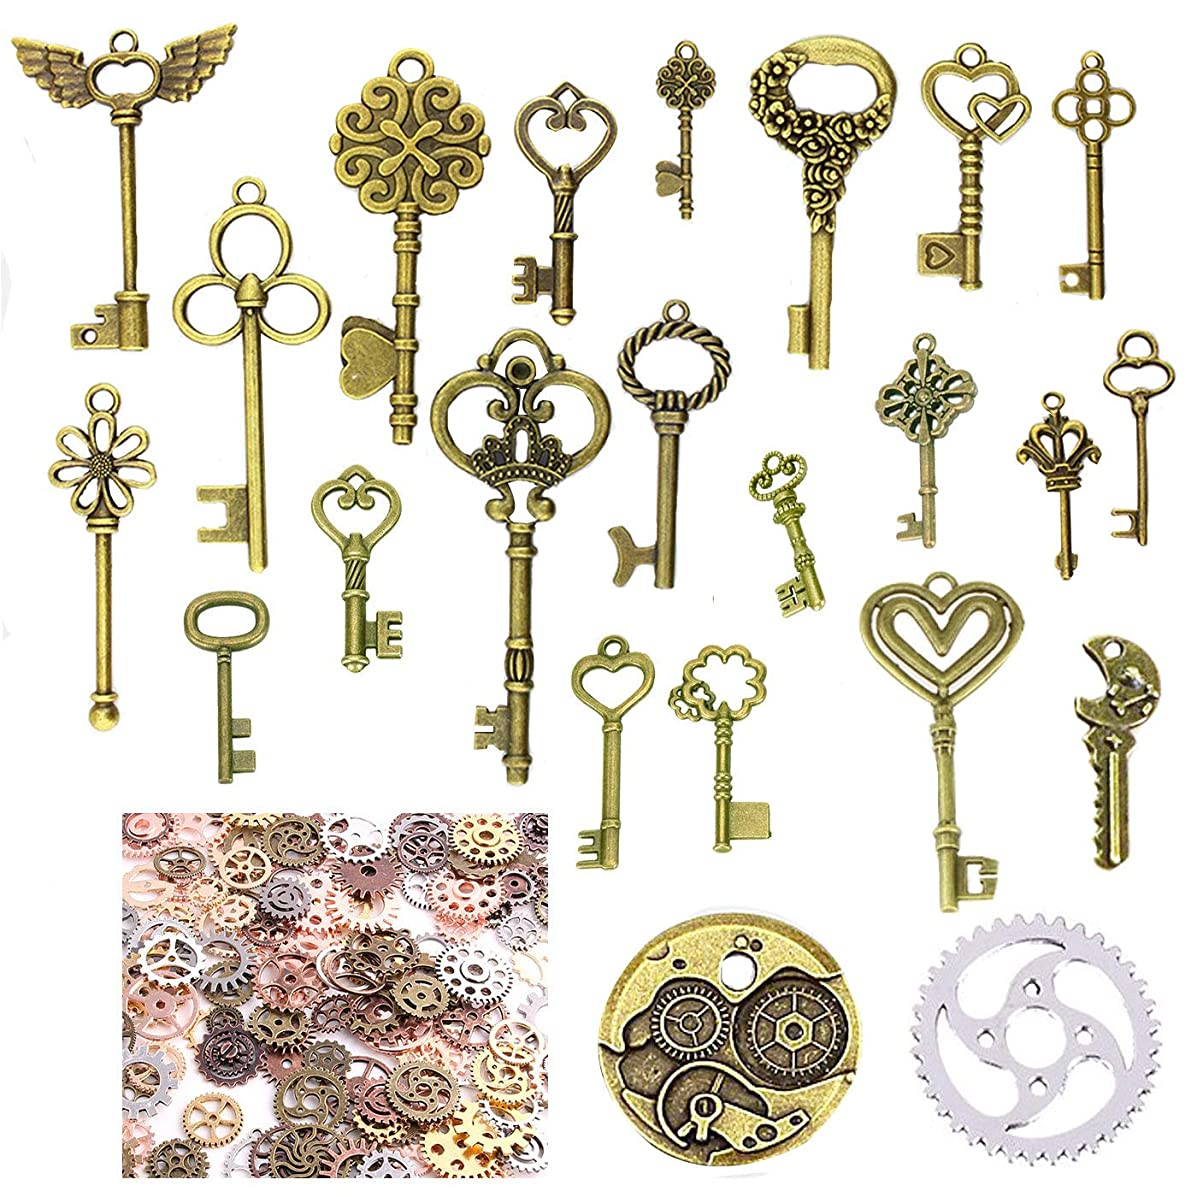 150 Gram Antique Bronze Vintage Skeleton Keys Steampunk Gears Cogs Charms Pendant Clock Watch Wheel for Jewelry Making Supplies, Steampunk Accessories, Craft Projects, Assorted Designs and Sizes